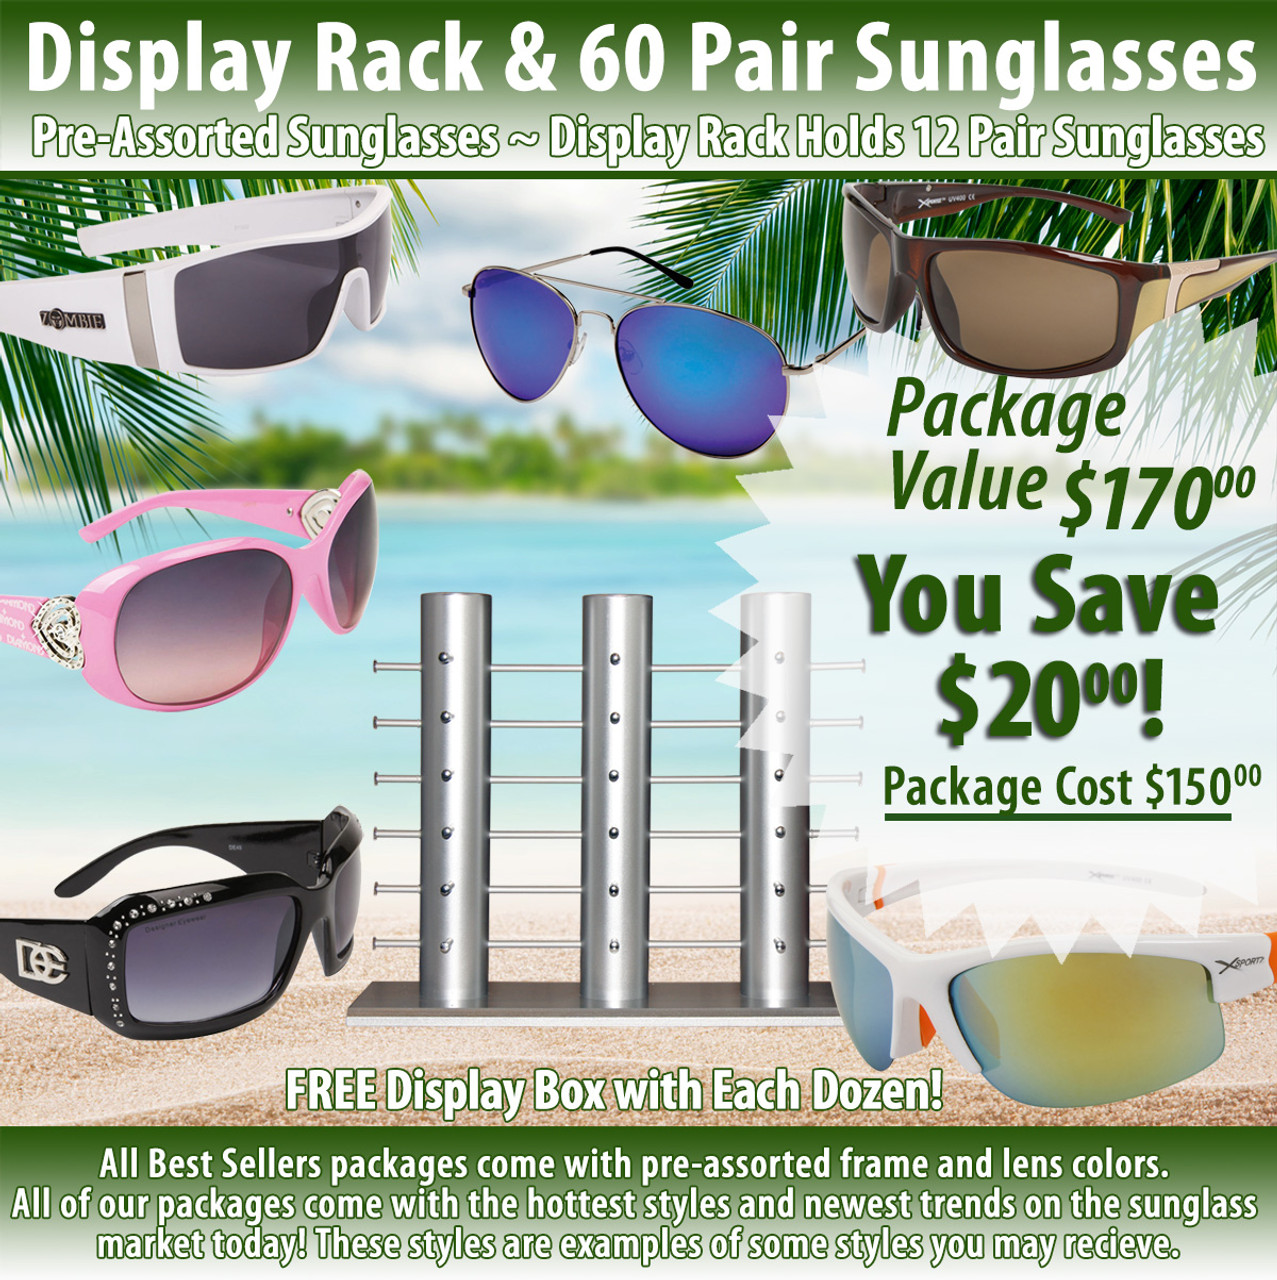 Package Deal ~ 1 Sunglass Rack & 60 Pair Assorted Sunglasses SPA16 (7057 + 60 pcs.) (Assorted Colors)